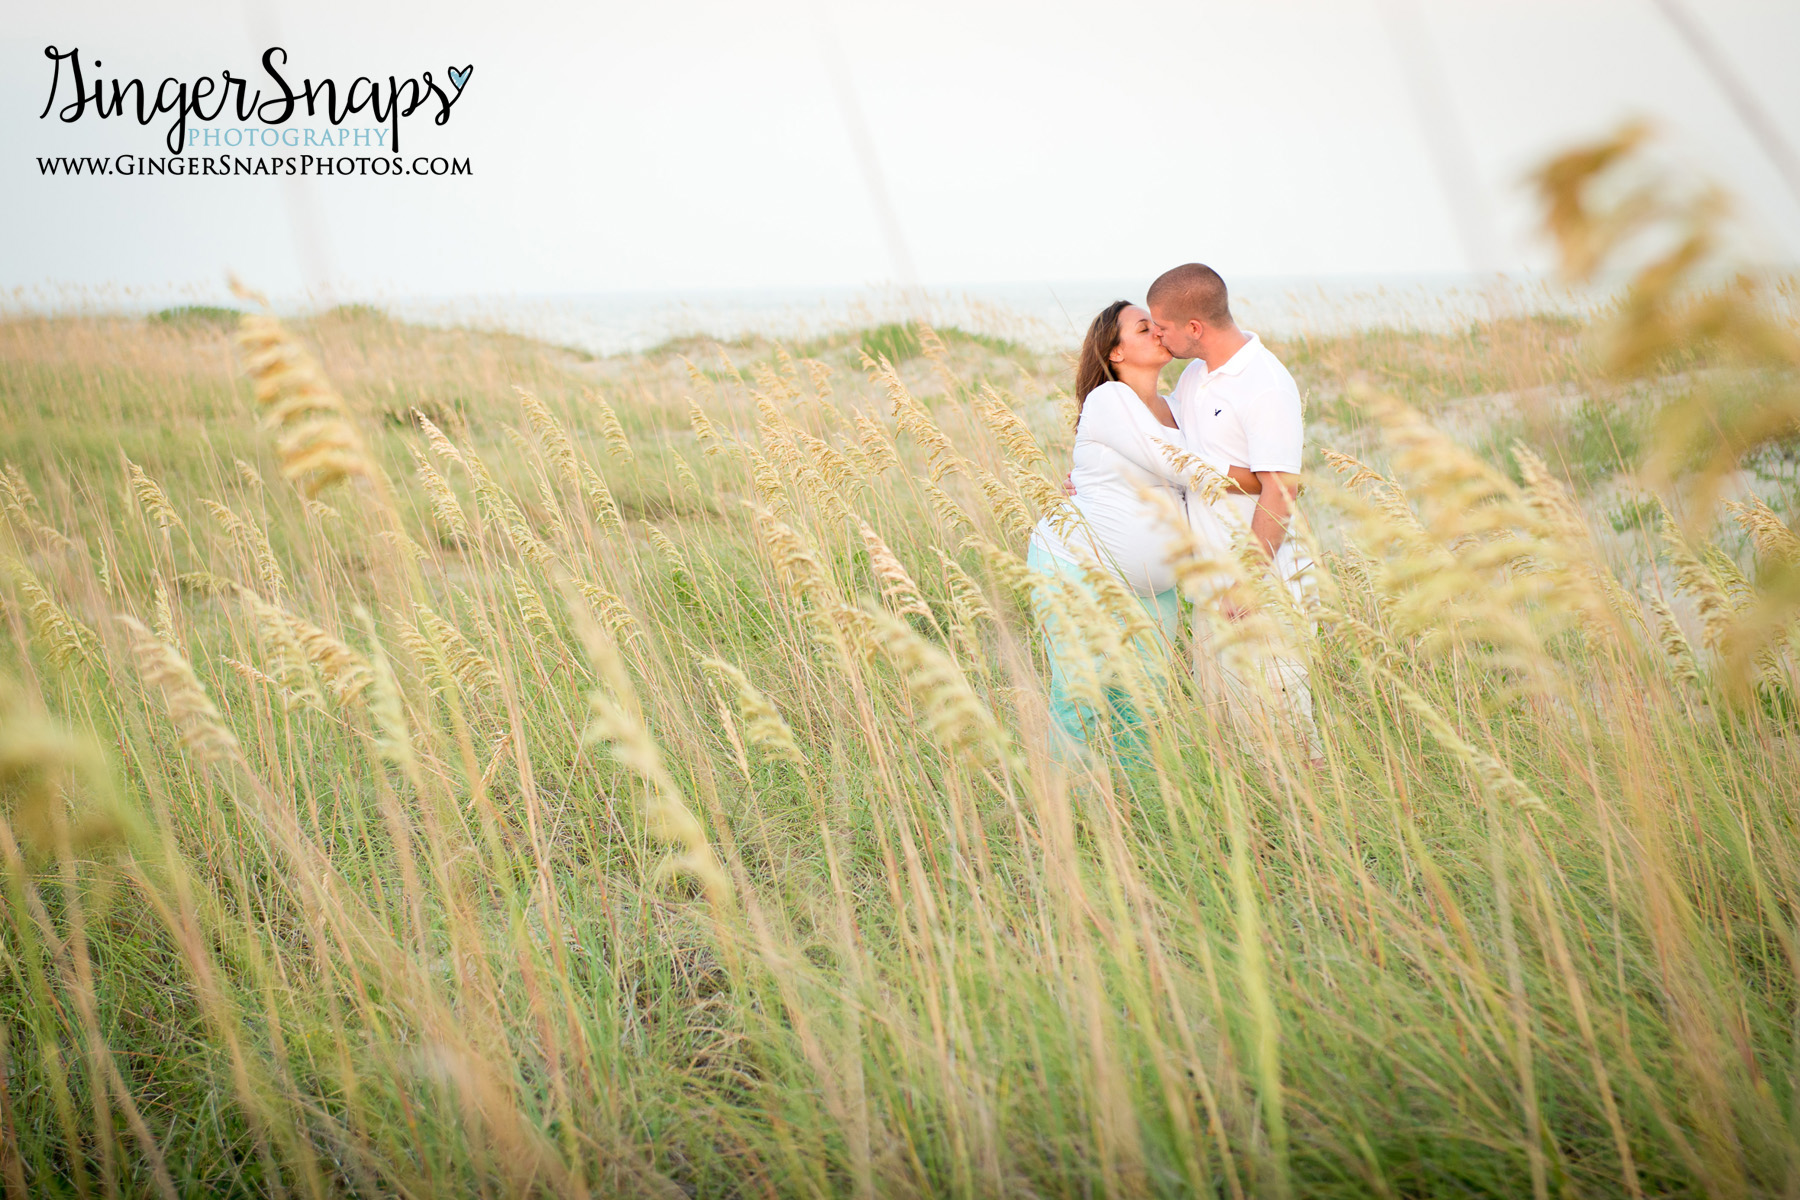 GingerSnaps Photography - 64